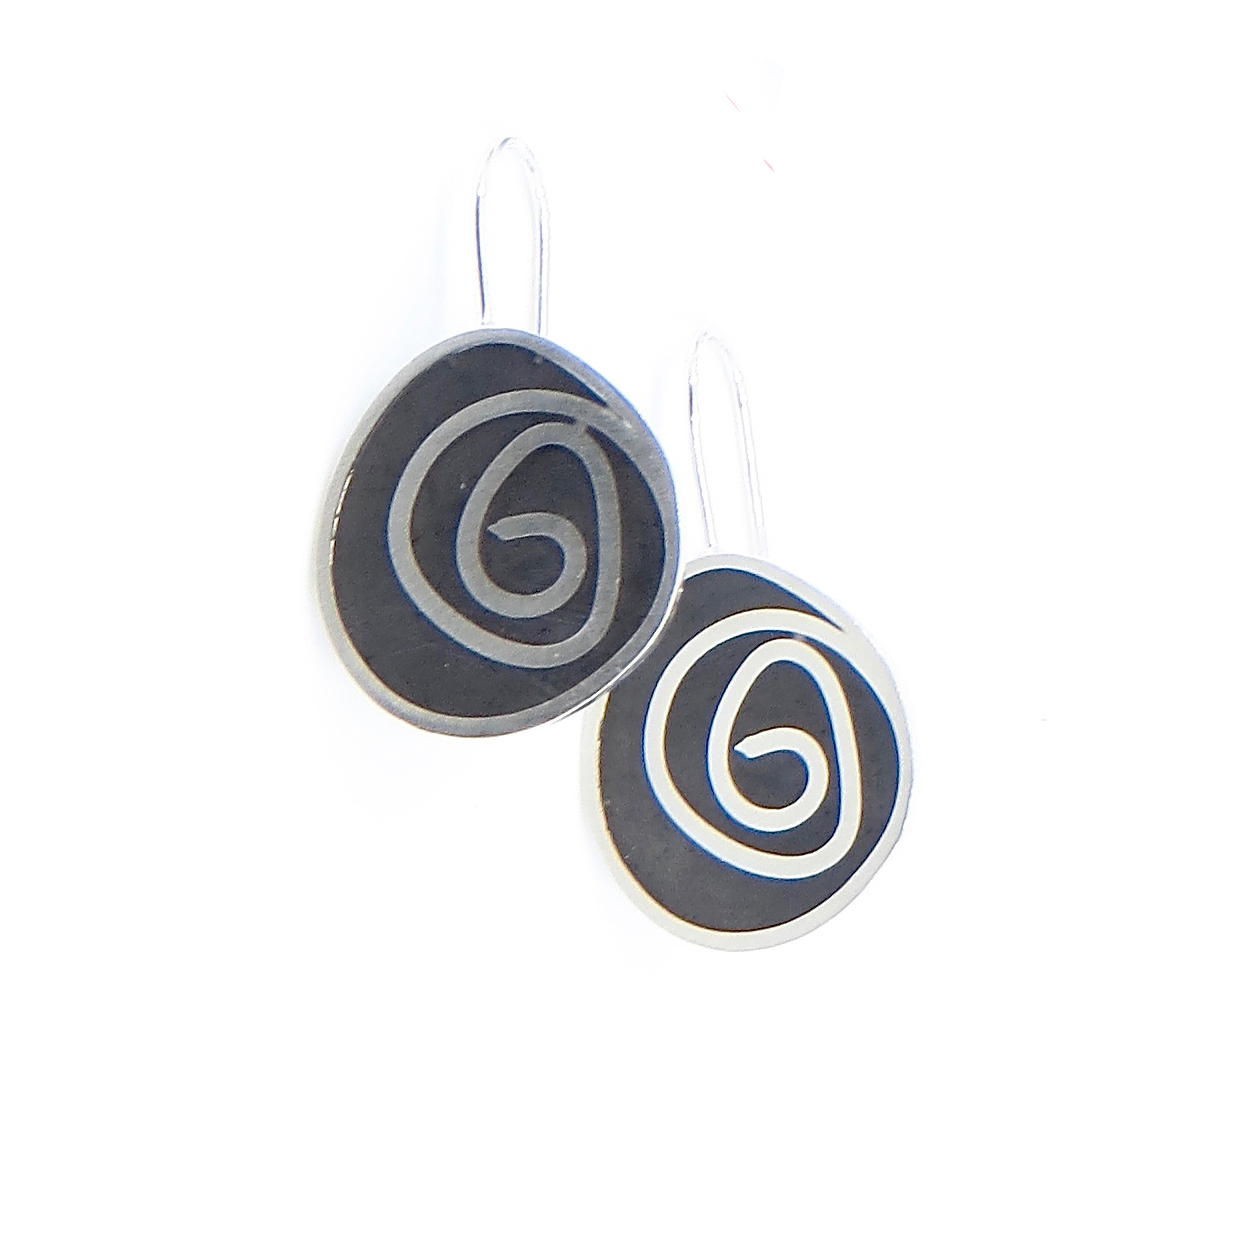 Swirl earrings, sterling silver with resin inlay, $90